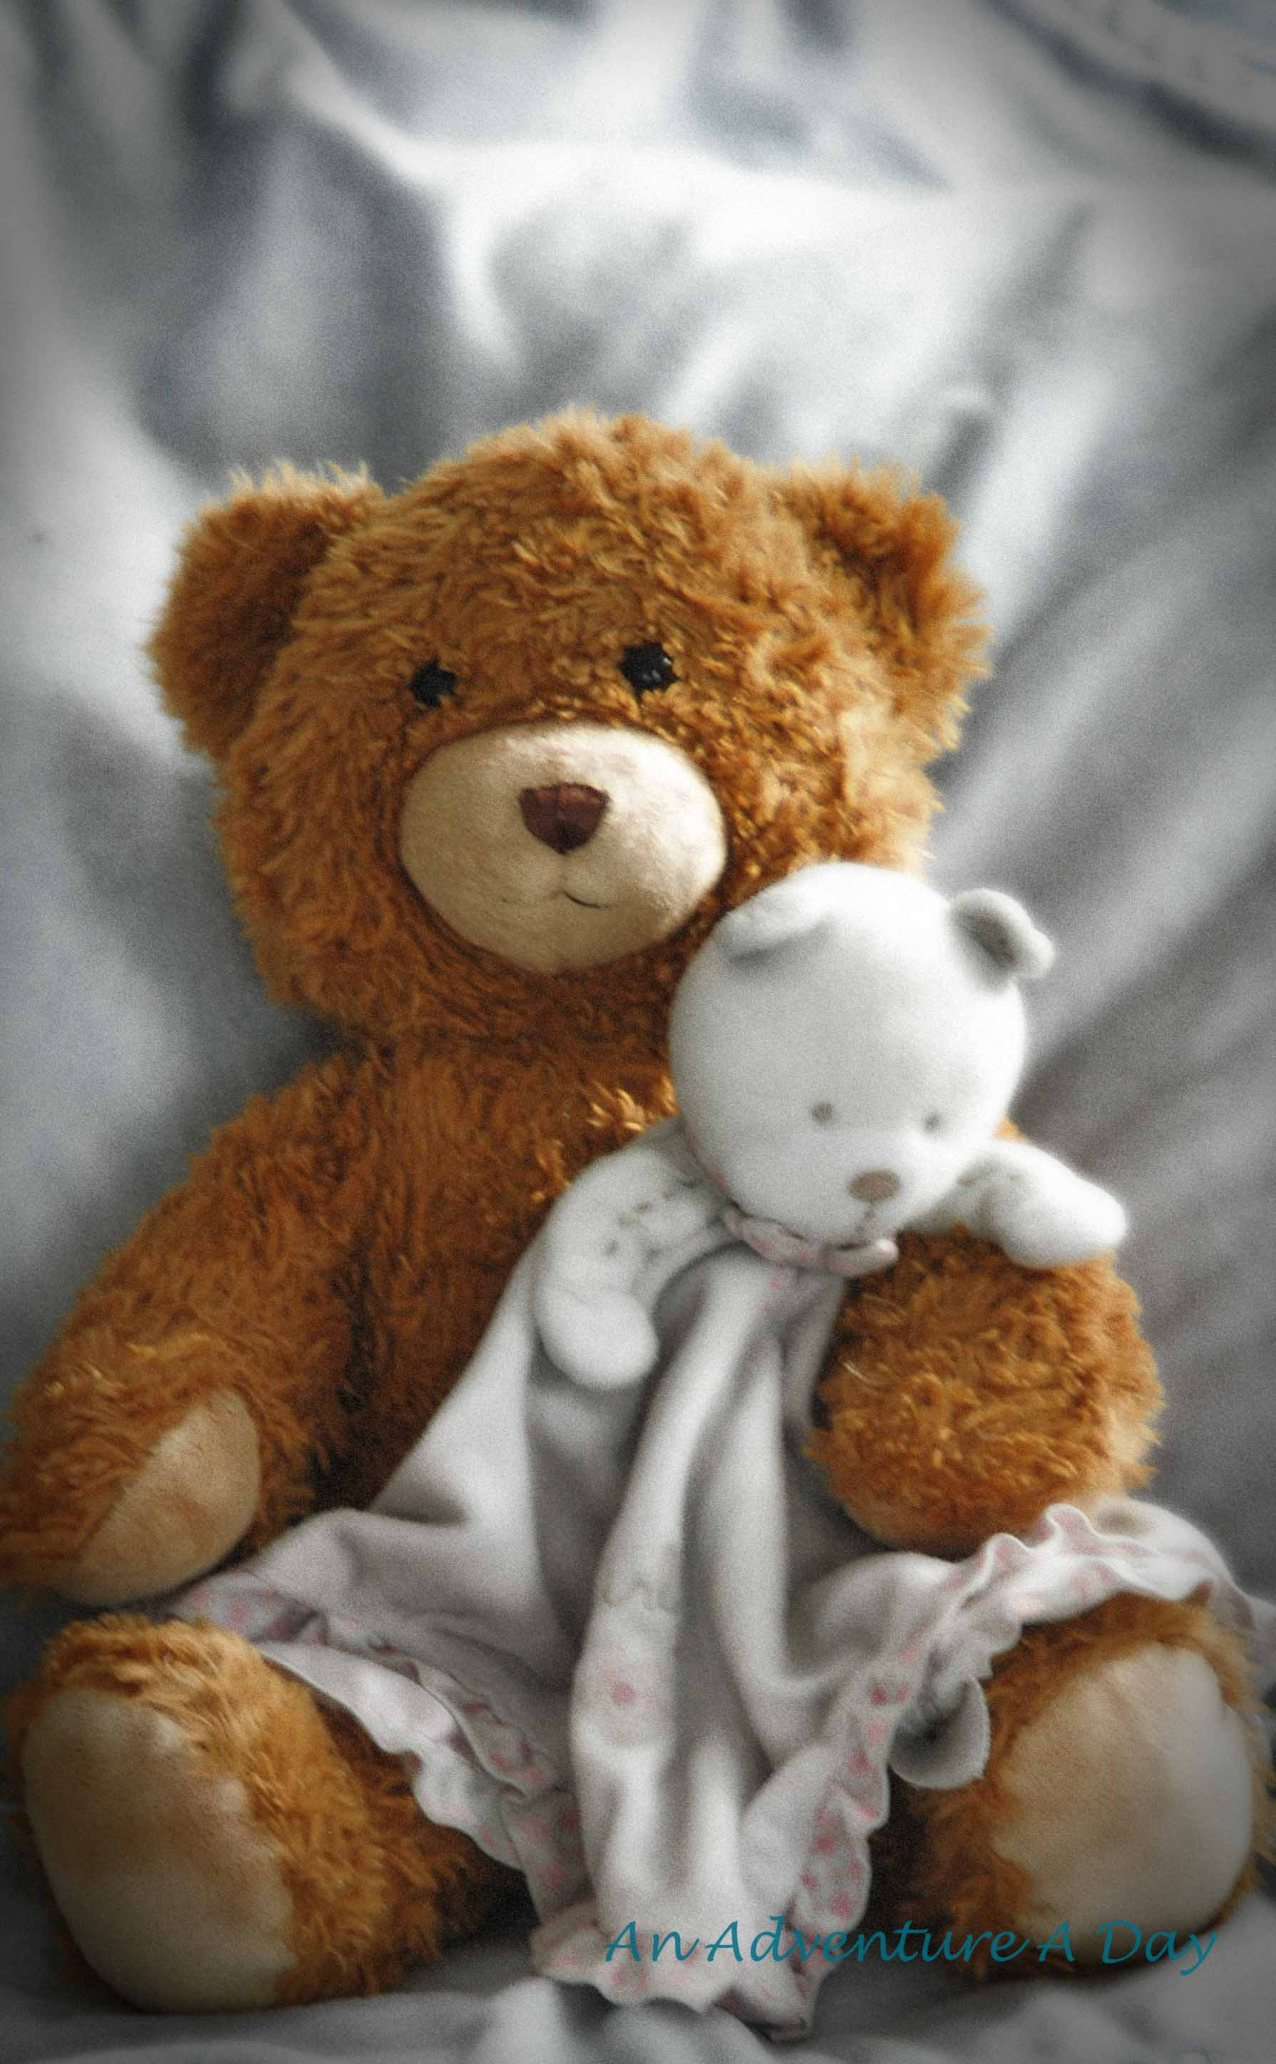 There's no love quite like the love between a child and their schmusebär - their Teddy!